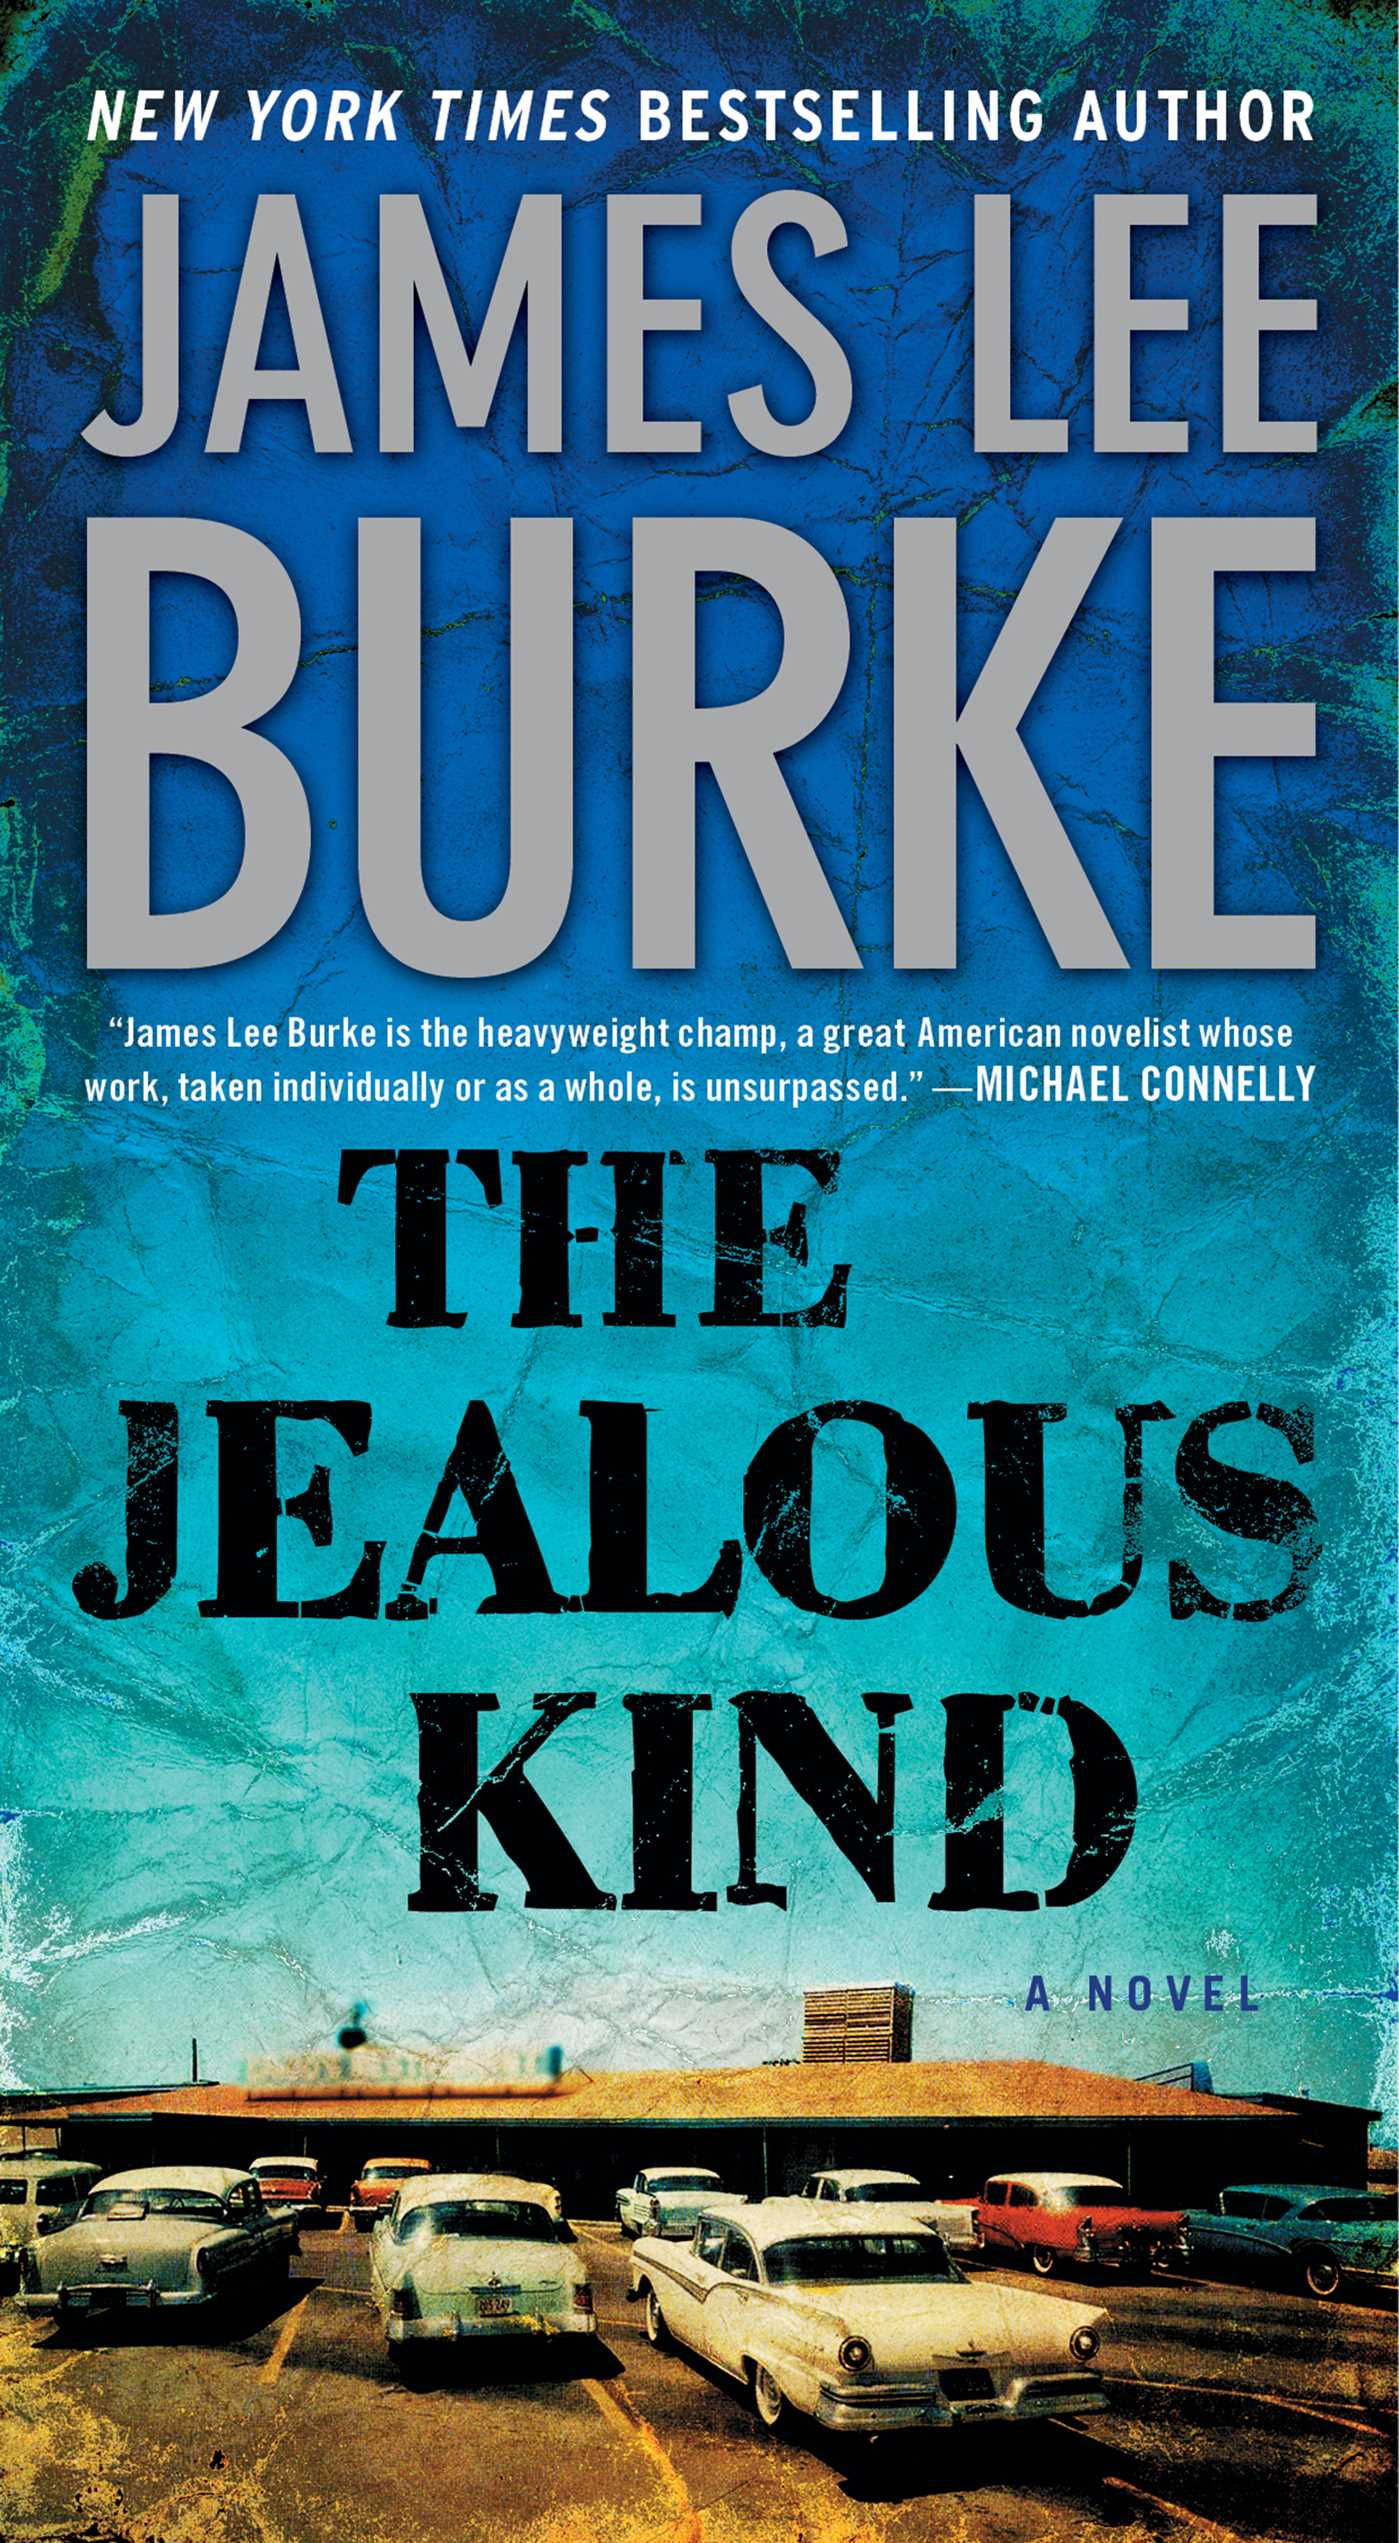 The jealous kind 9781501107412 hr